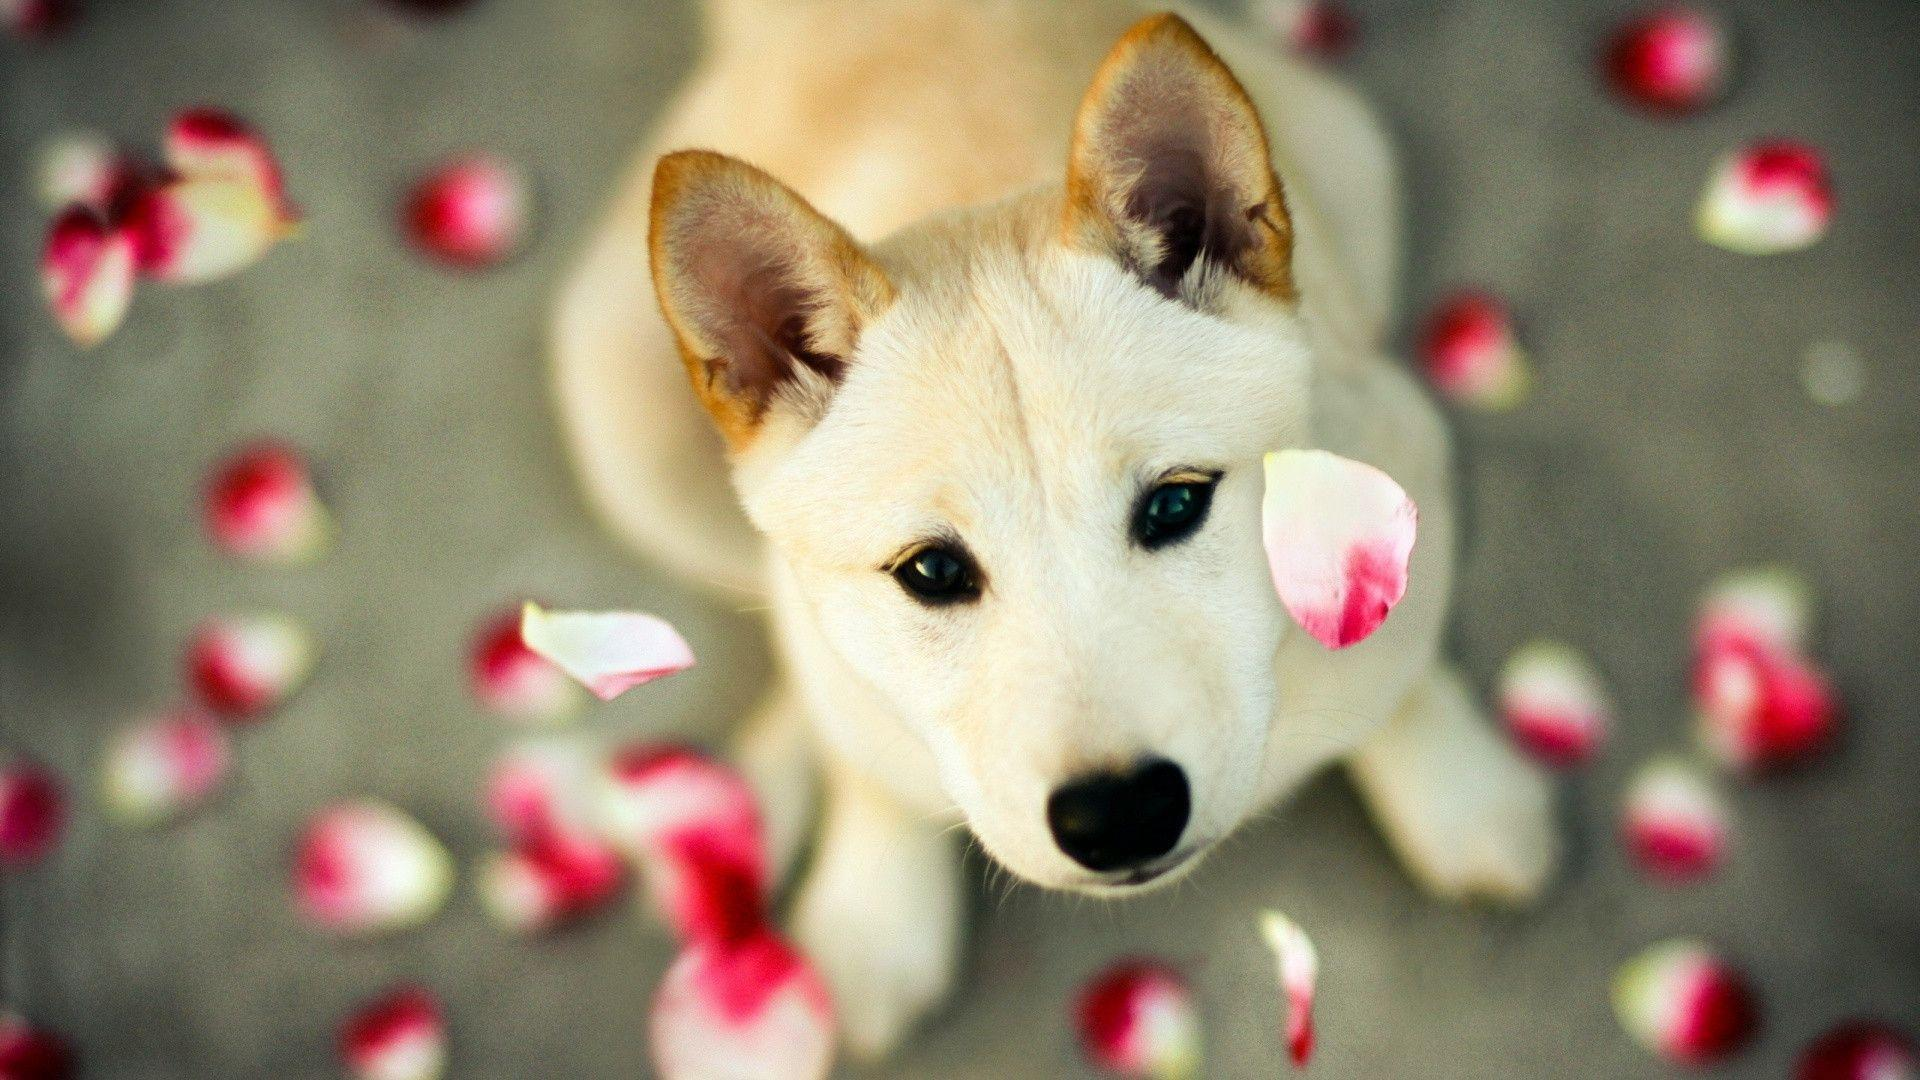 Wallpapers For > Cute Dog Desktop Wallpapers